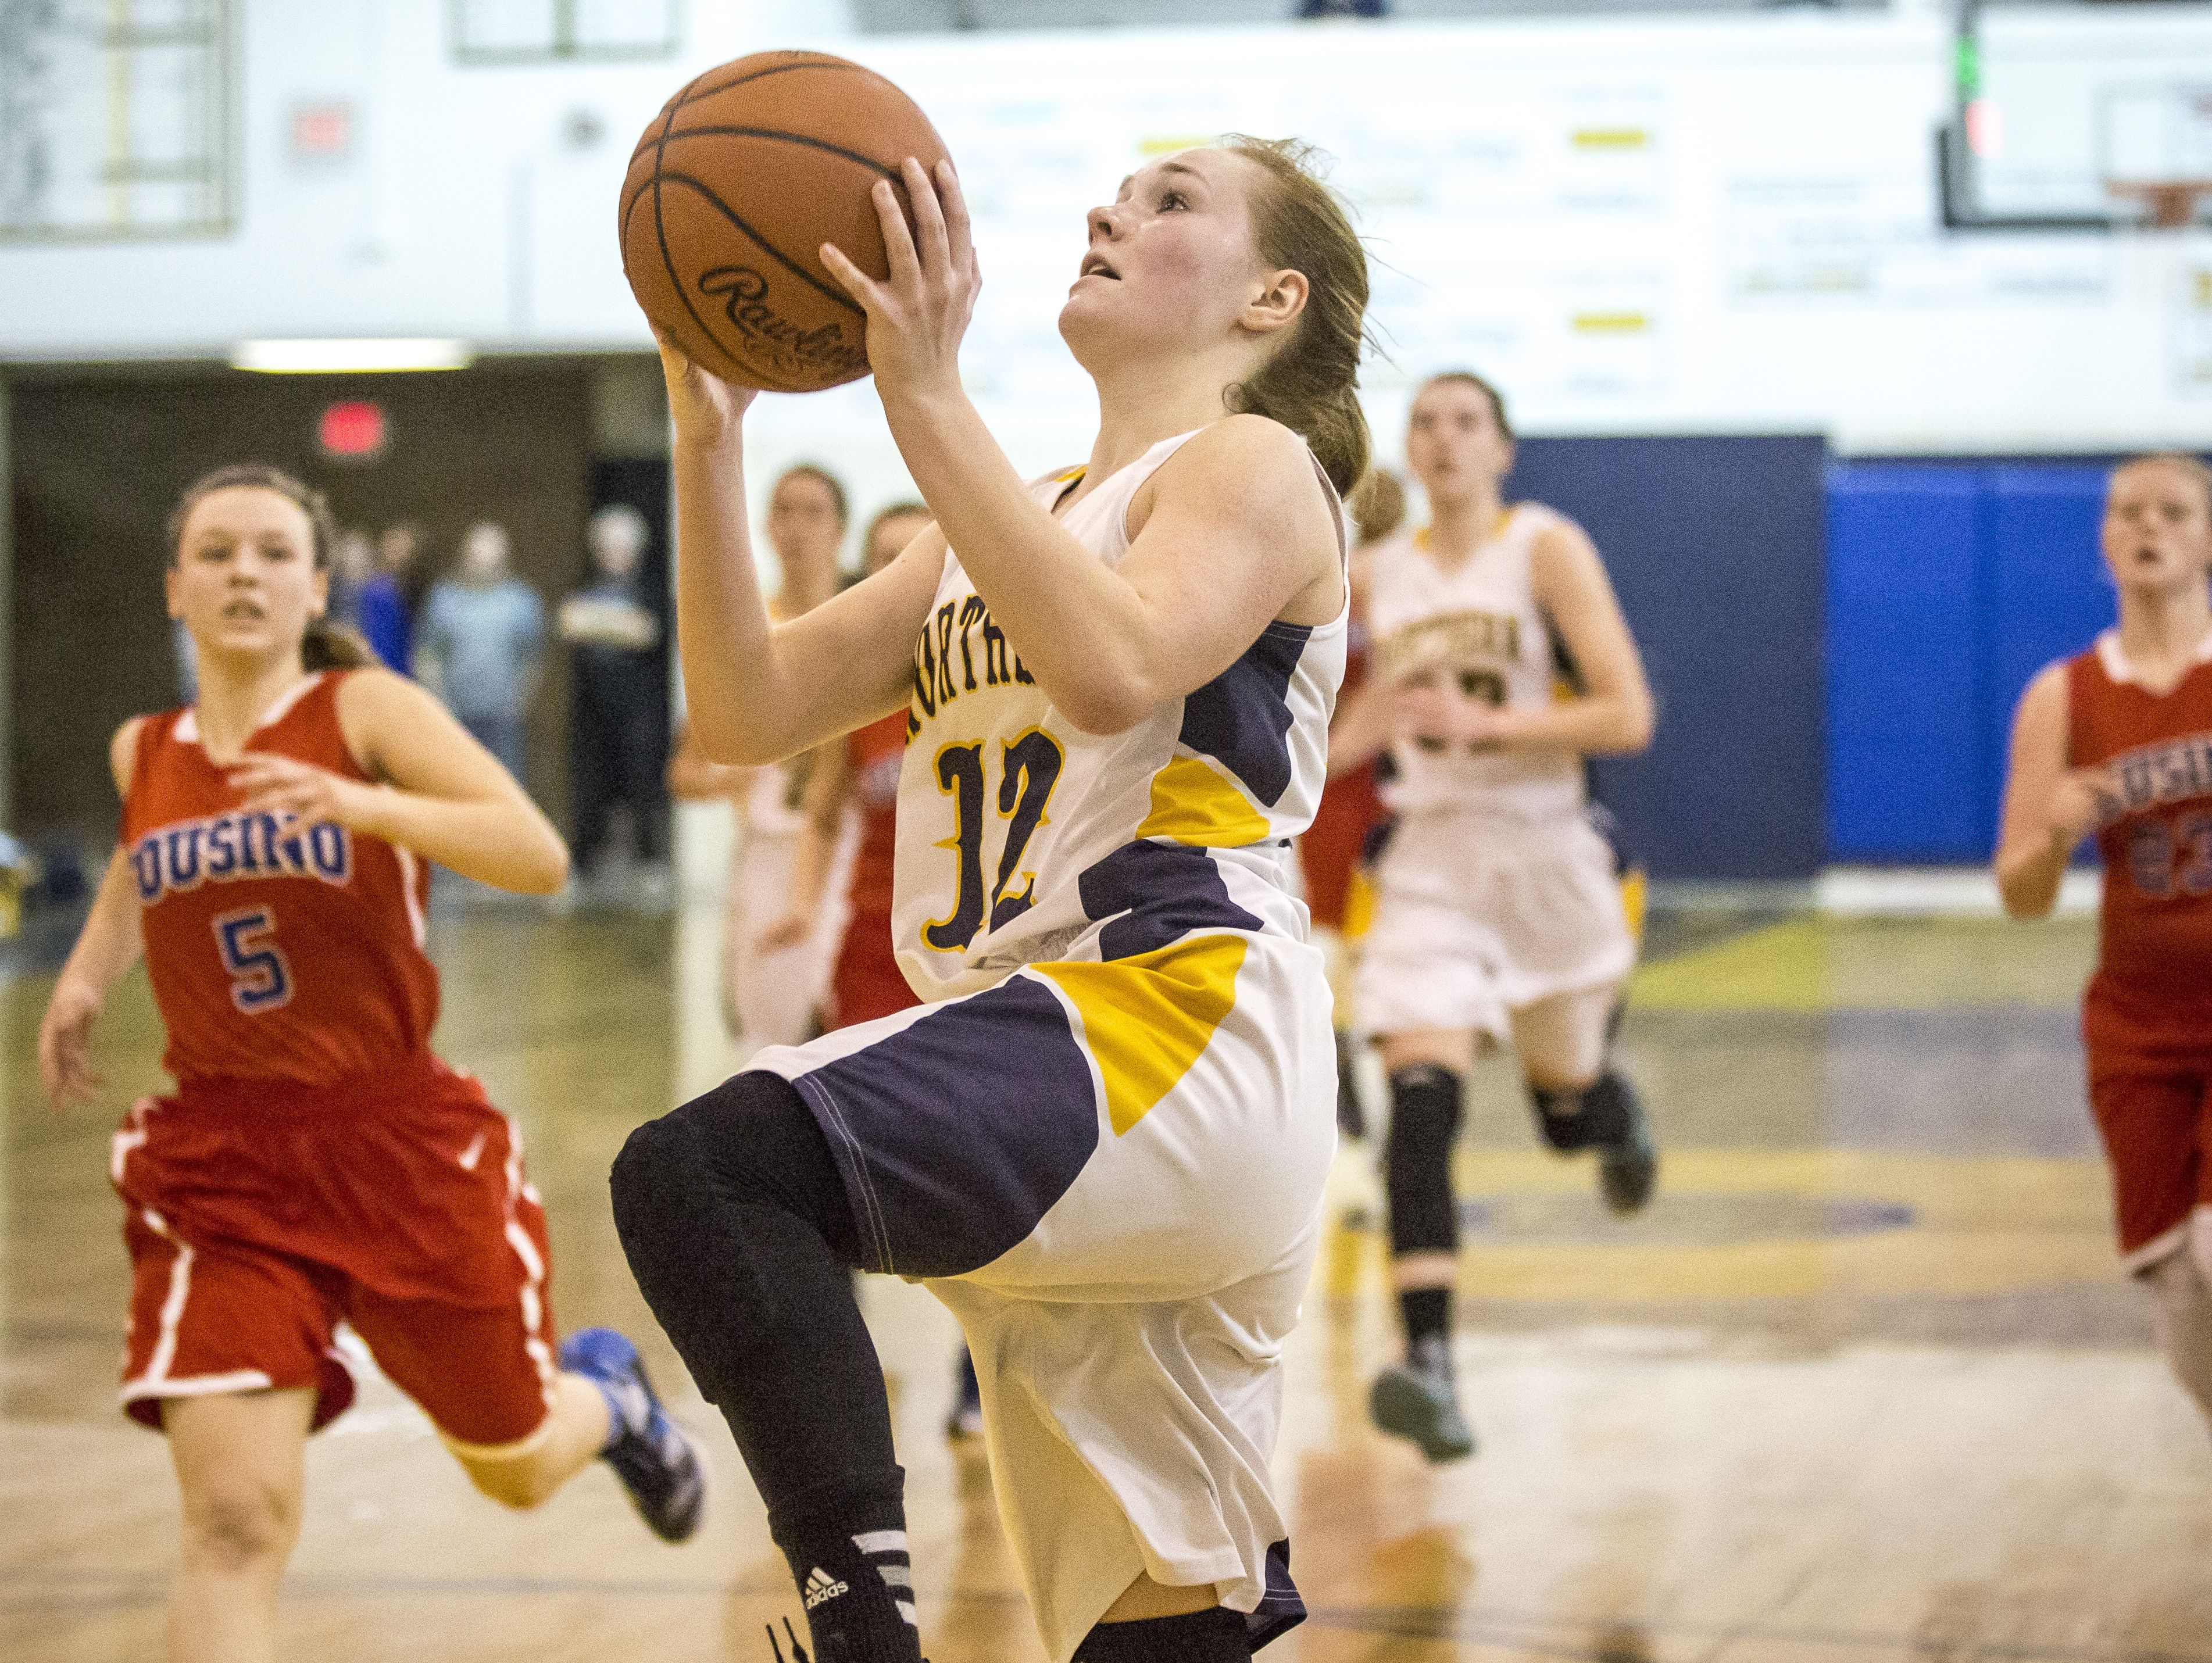 Port Huron Northern junior Kathleen O'Connor goes for a layup during a basketball game Friday, Feb. 19, 2016 at Port Huron Northern High School.